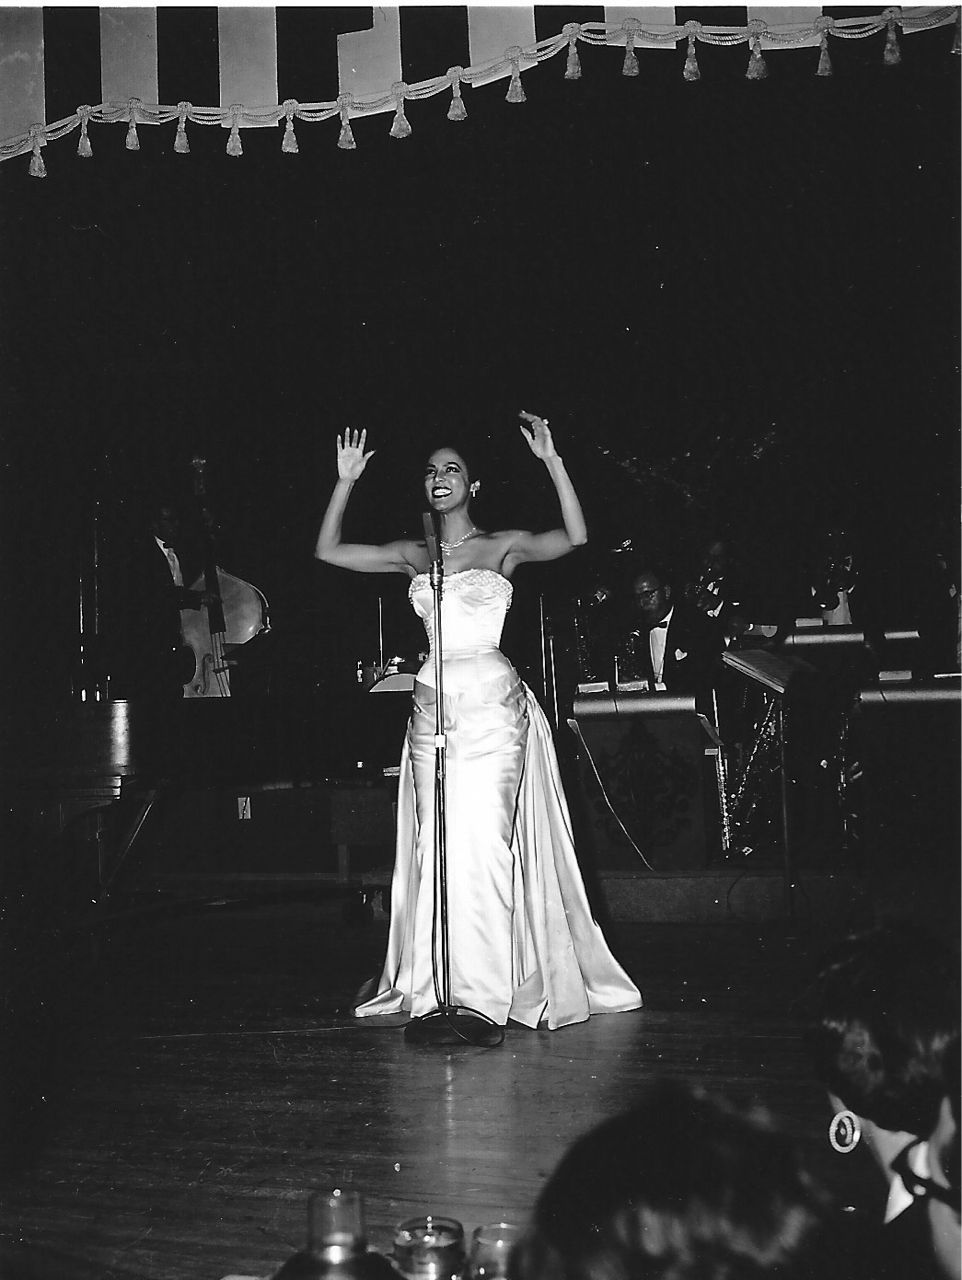 1954 photo of Dorothy Dandridge performing at the Last Frontier Hotel in Las Vegas. On her closing night, a new one night attendance record of 1,263 was set. This was the same hotel that in 1953 drained the pool after Dottie deliberately dipped her toe in it (because blacks were not welcome in the pool area). Remember that scene in Introducing Dorothy Dandridge??